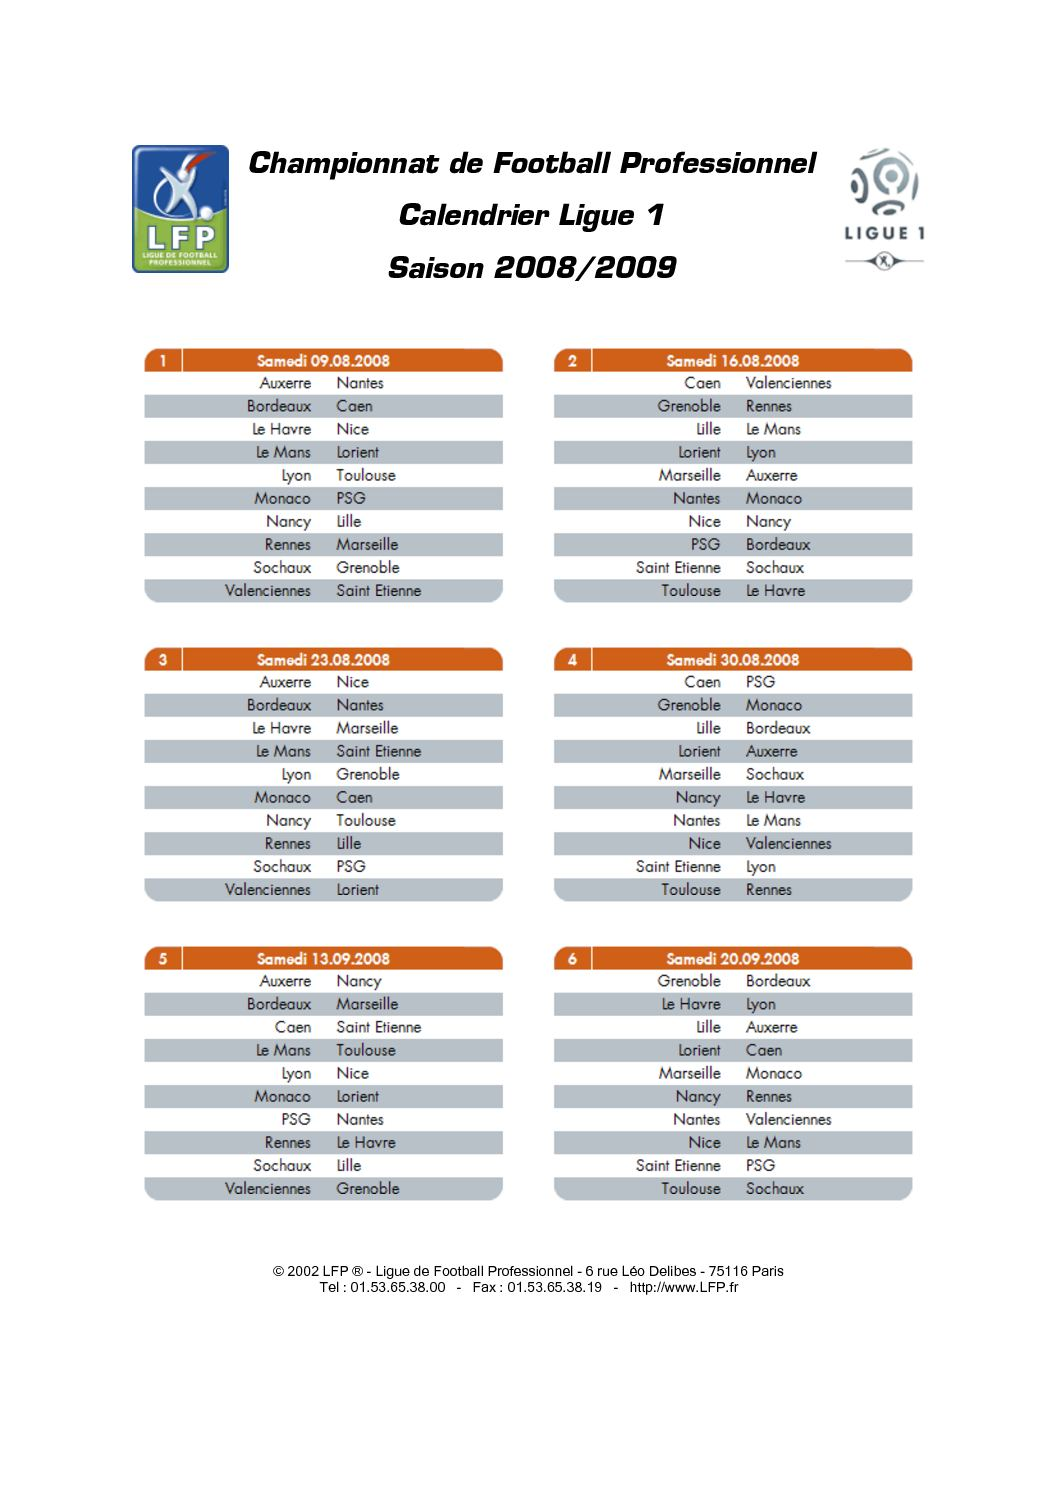 Foot Calendrier Ligue 1.Calameo Calendrier Ligue 1 2008 2009